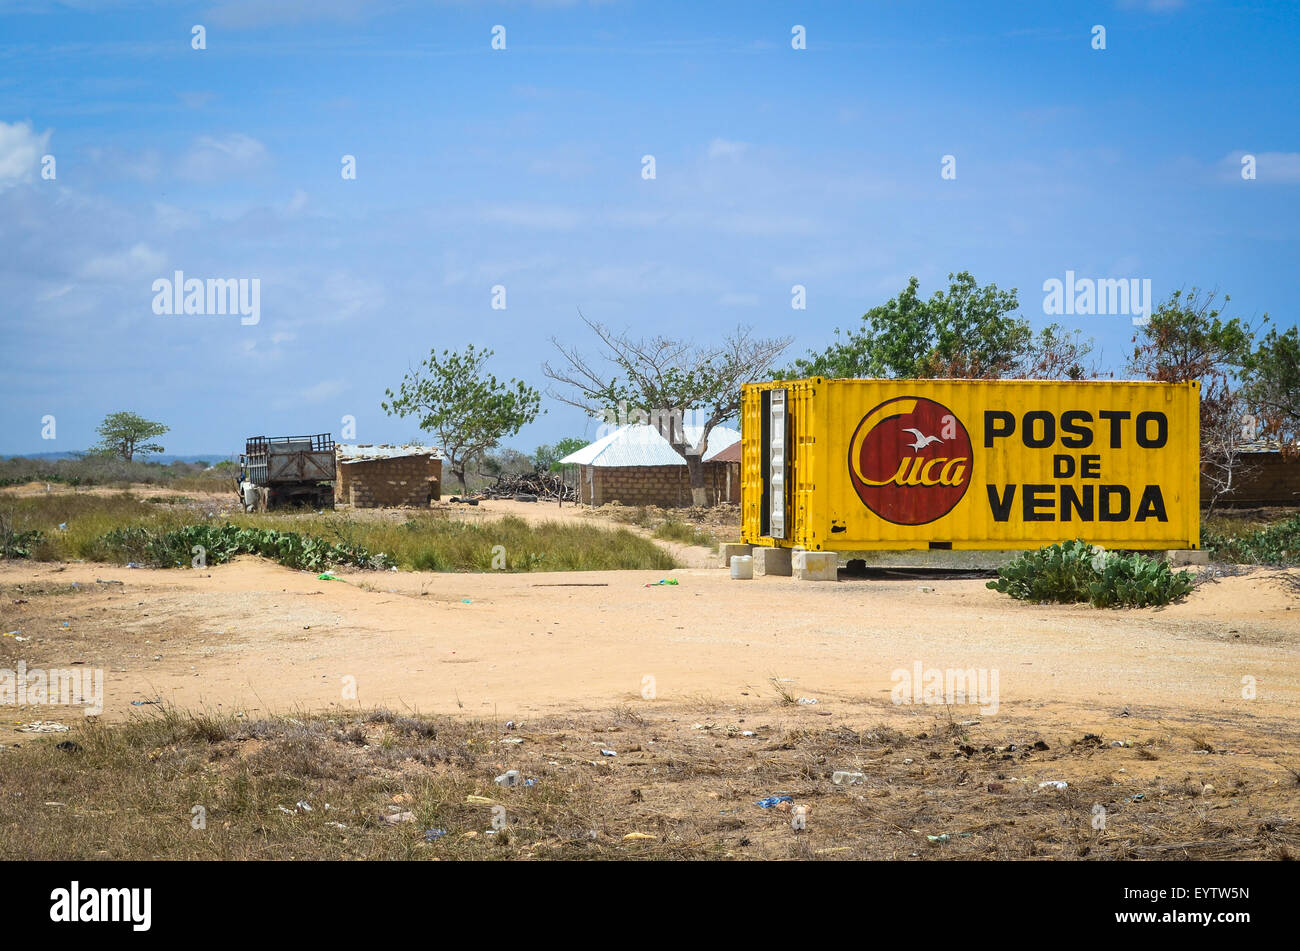 Cuca (beer brand) container used as a retail shop in Angola (small business) - Stock Image